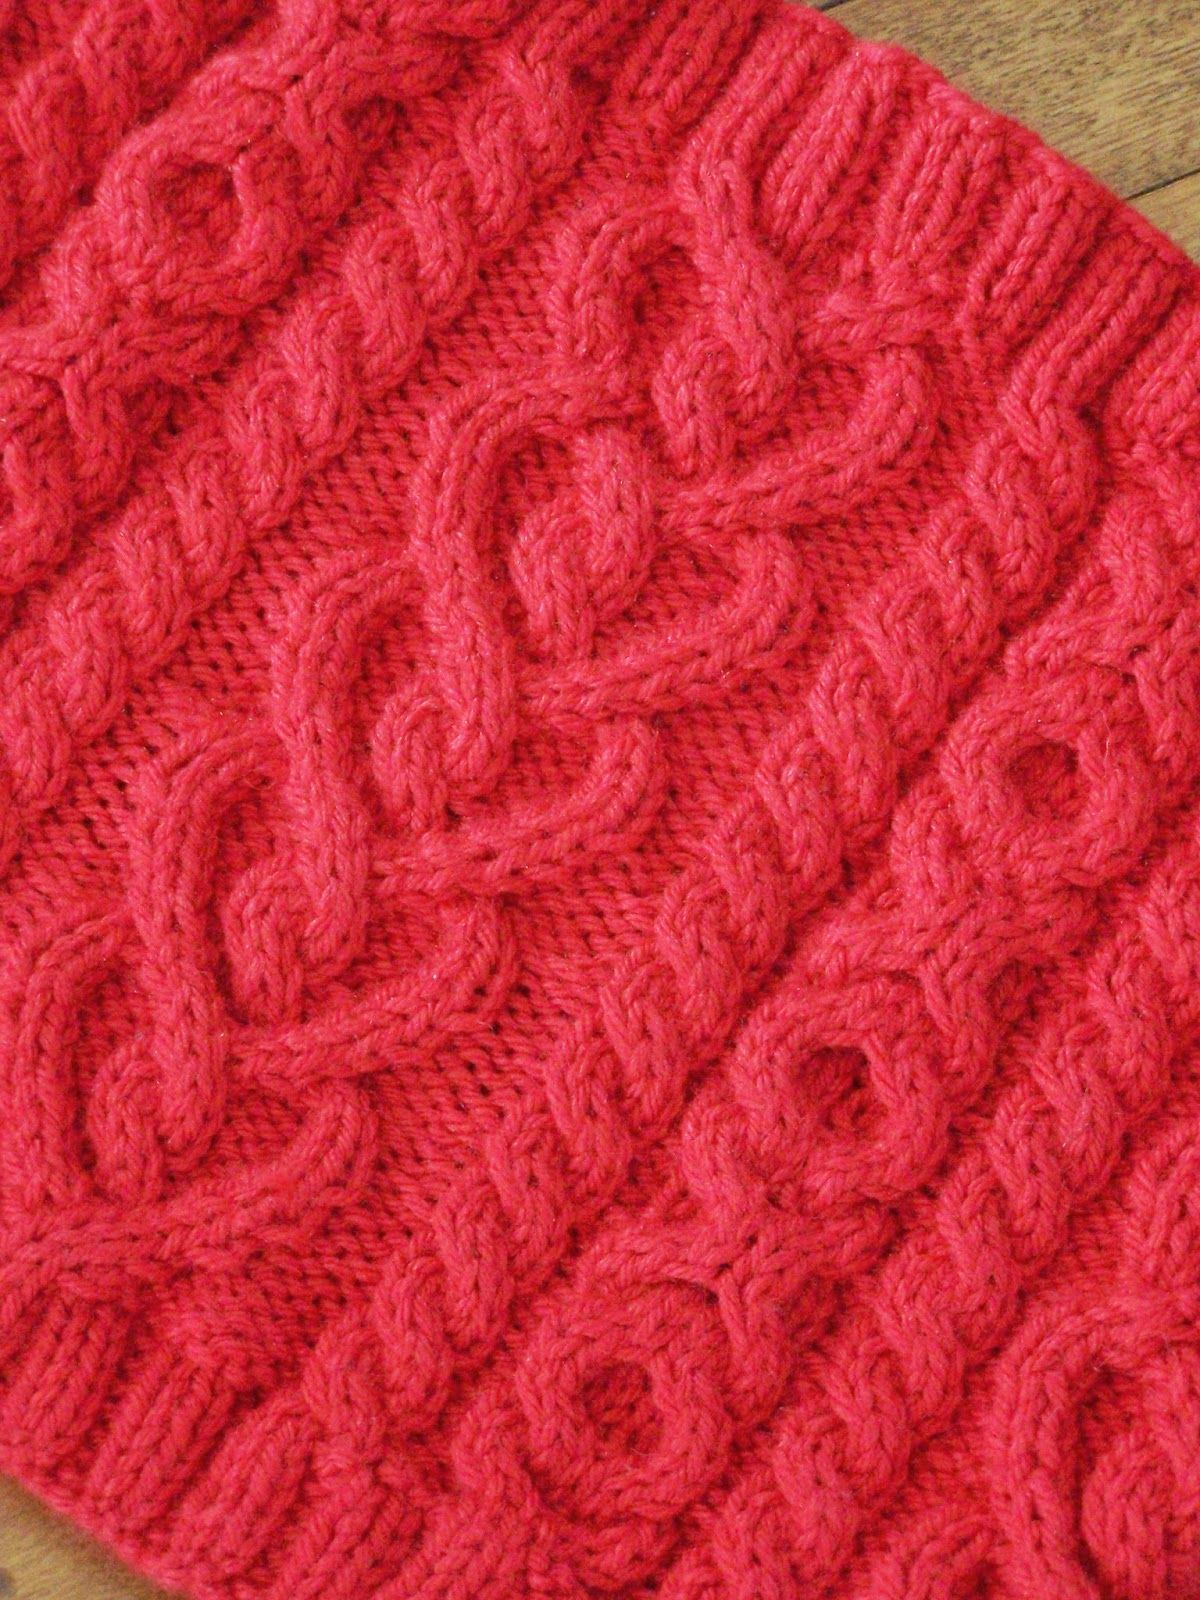 Delorme Designs: LOVE AND KISSES COWL. Heart Cable.  X's and O's Cable. Heart Cowl